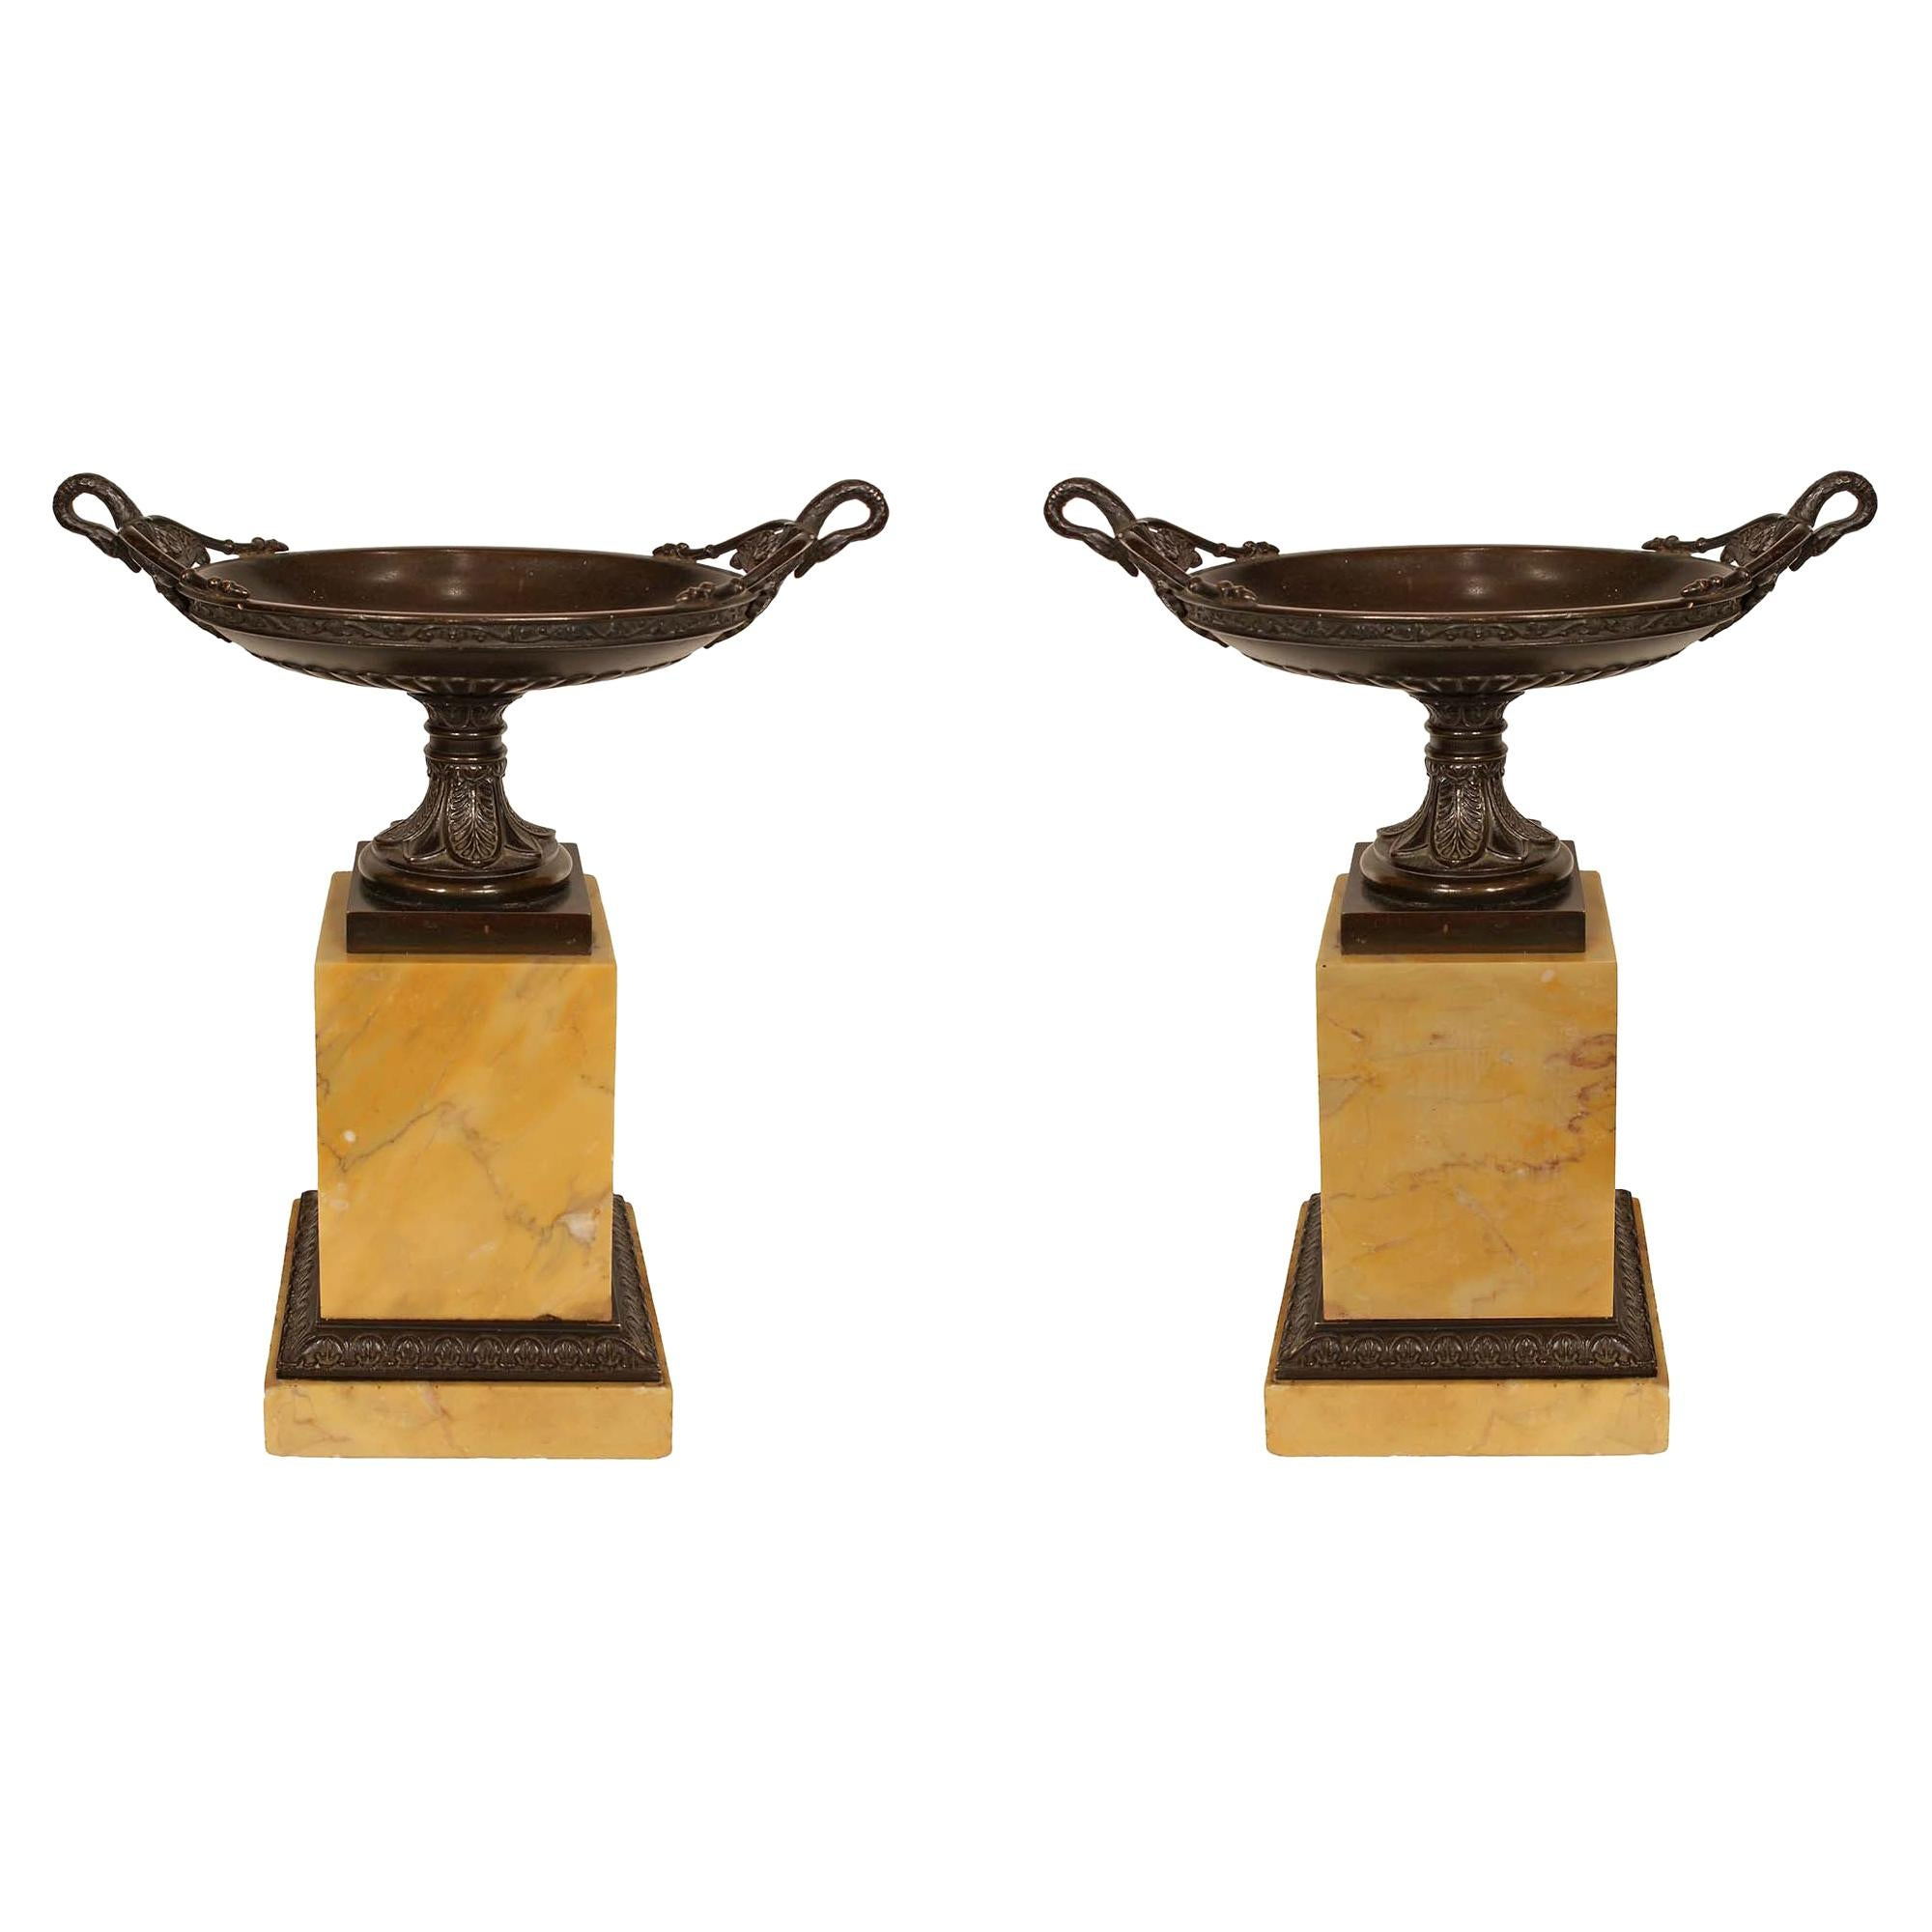 Pair of 19th Century Neoclassical Style Patinated Bronze and Marble Tazzas